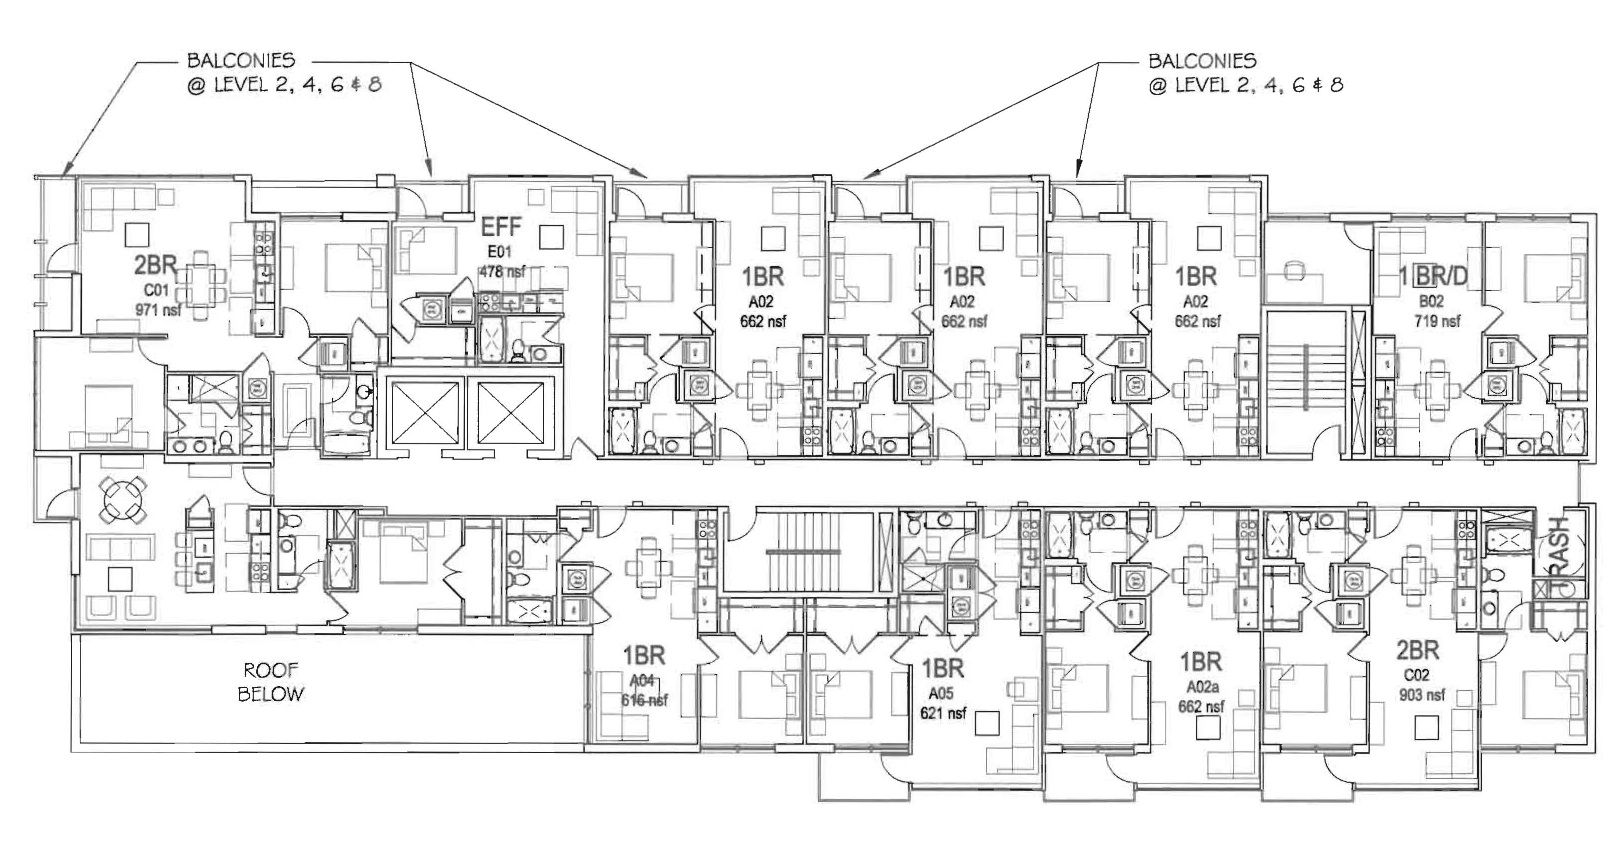 Apartment floor plans for Mirym\'s apartment building, 7 story tall ...